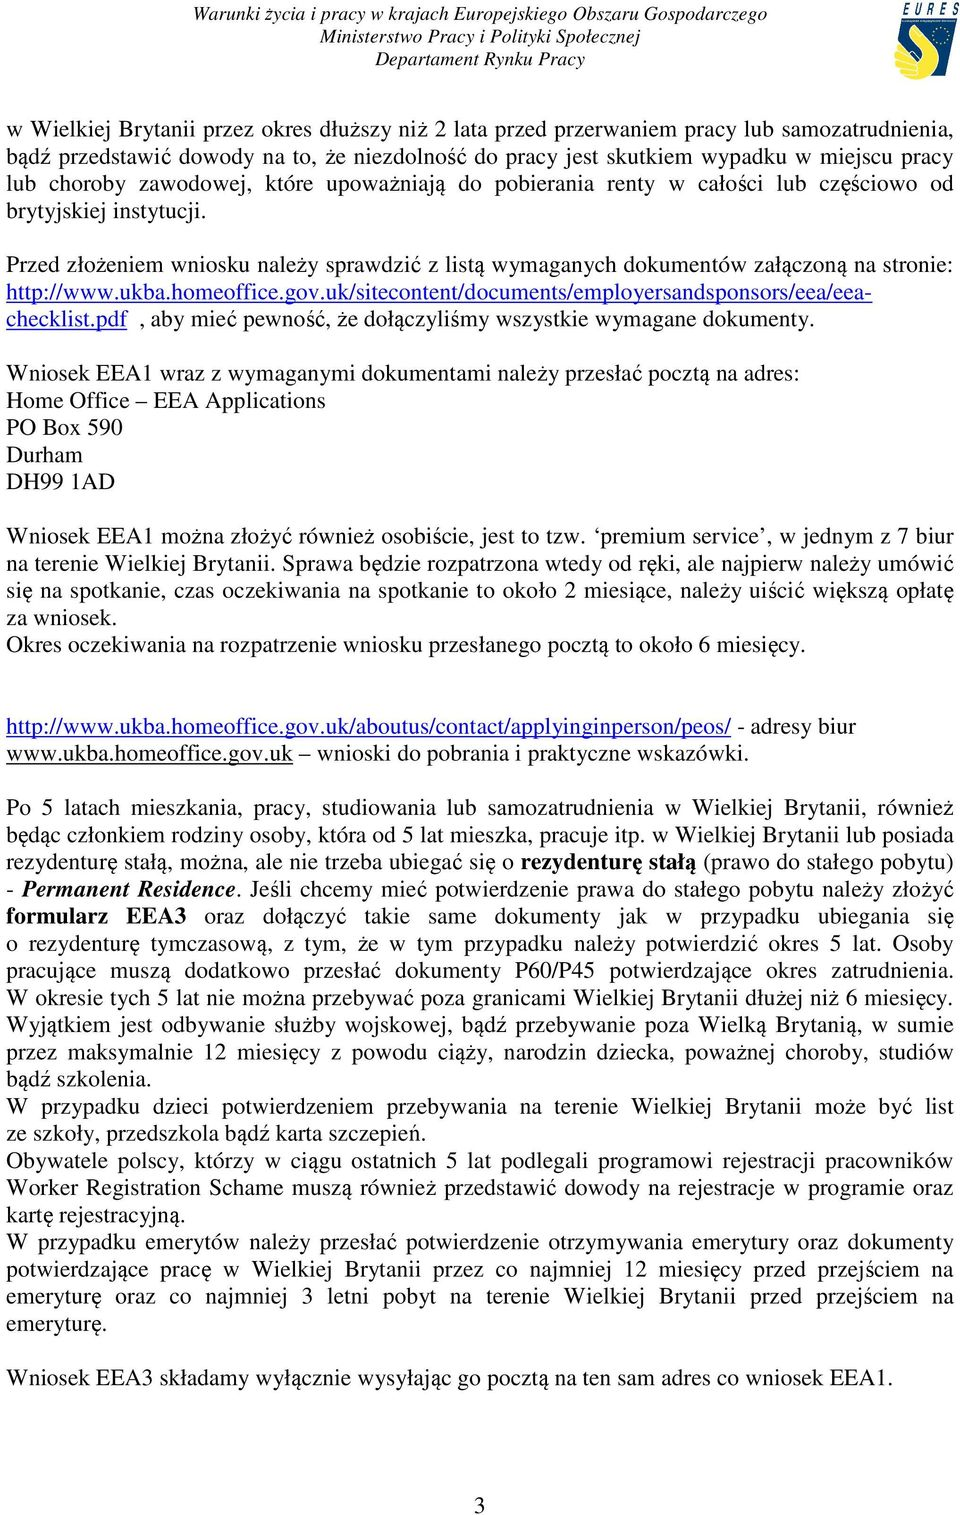 Przed złożeniem wniosku należy sprawdzić z listą wymaganych dokumentów załączoną na stronie: http://www.ukba.homeoffice.gov.uk/sitecontent/documents/employersandsponsors/eea/eeachecklist.